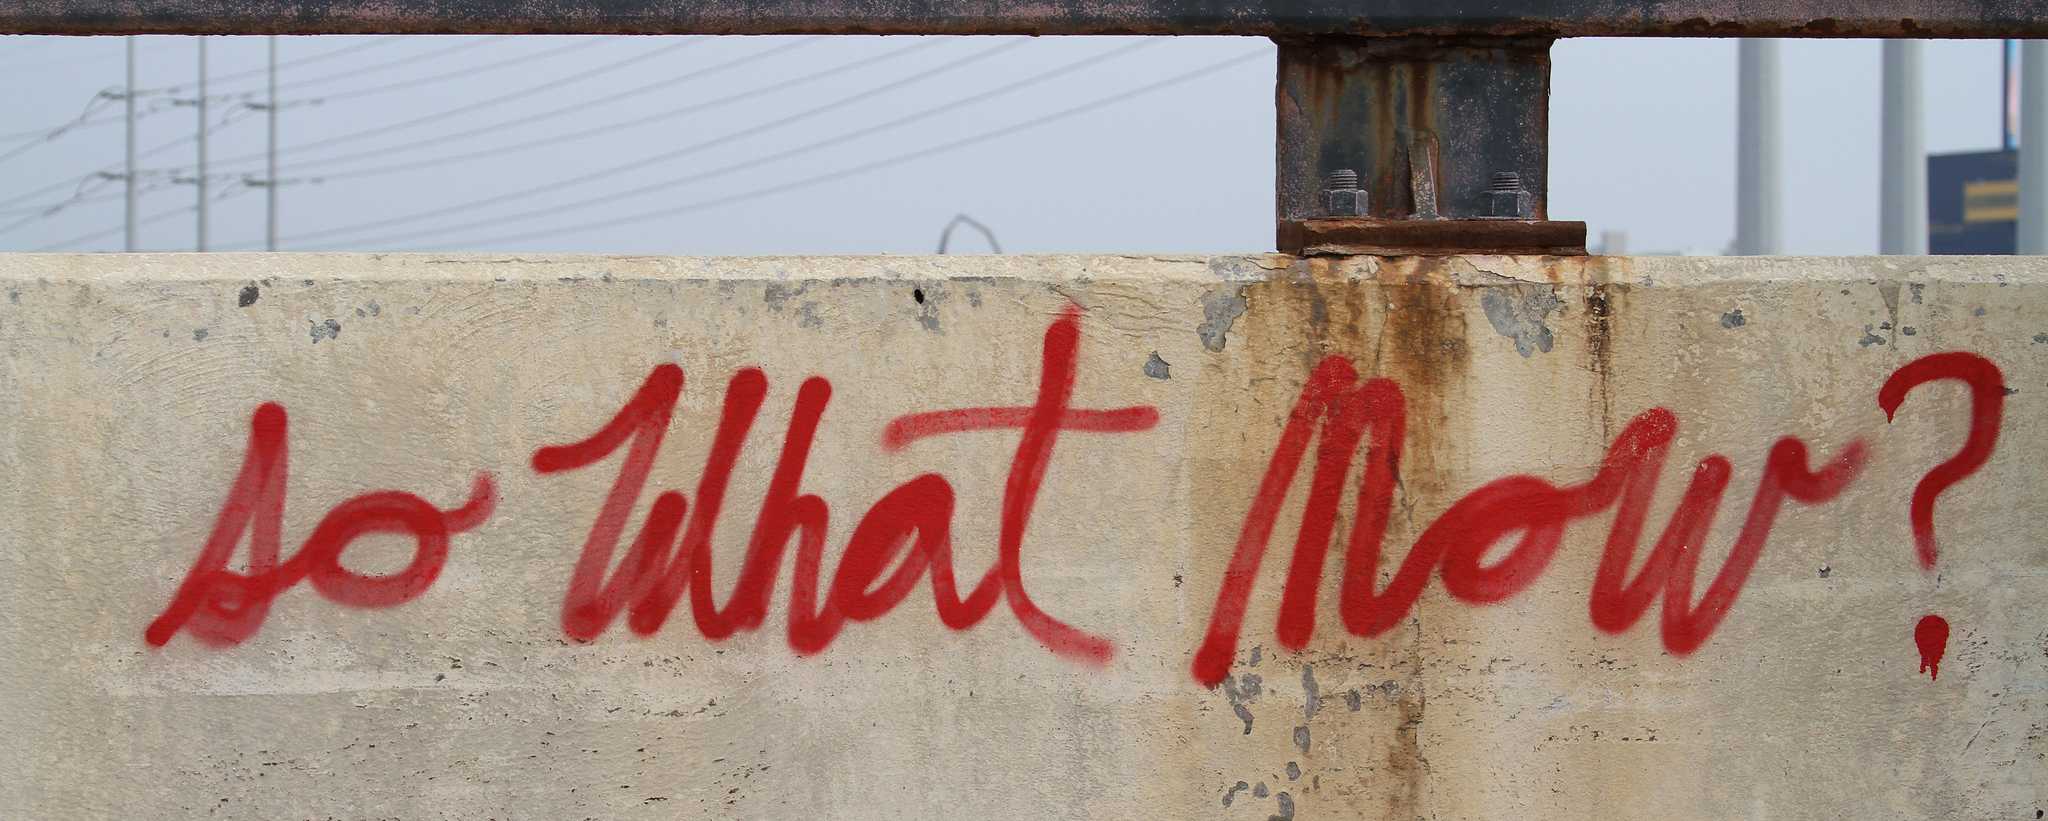 Red graffiti on a wall reading, 'So what now?'. Photo by Andrew Fleming